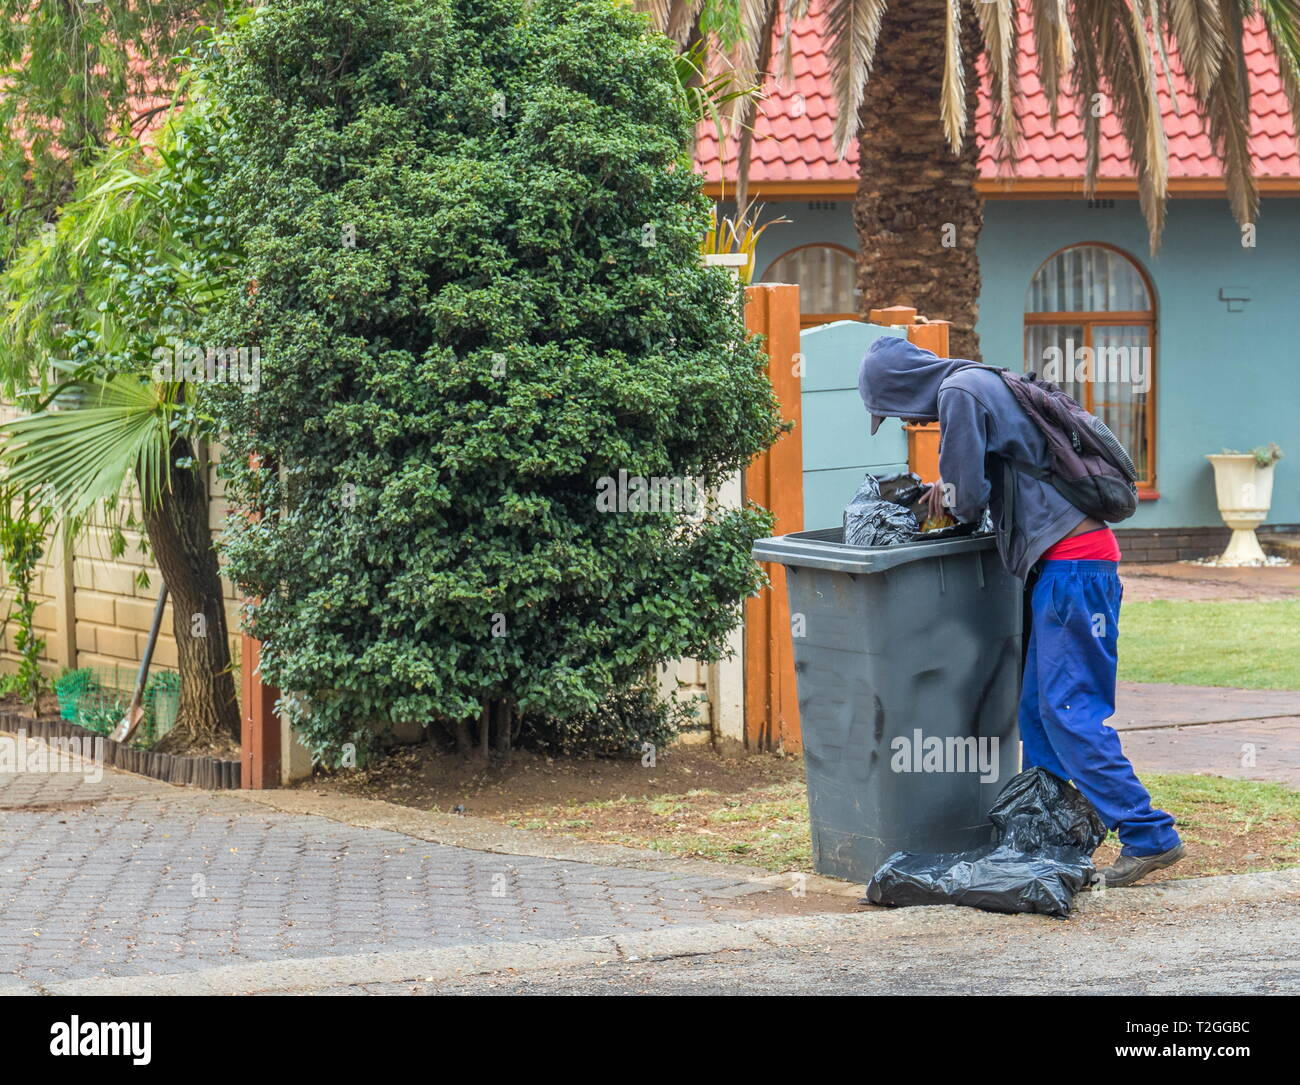 Johannesburg, South Africa - unidentified unemployed homeless man picks through a residential refuse bin for food or usable items - Stock Image